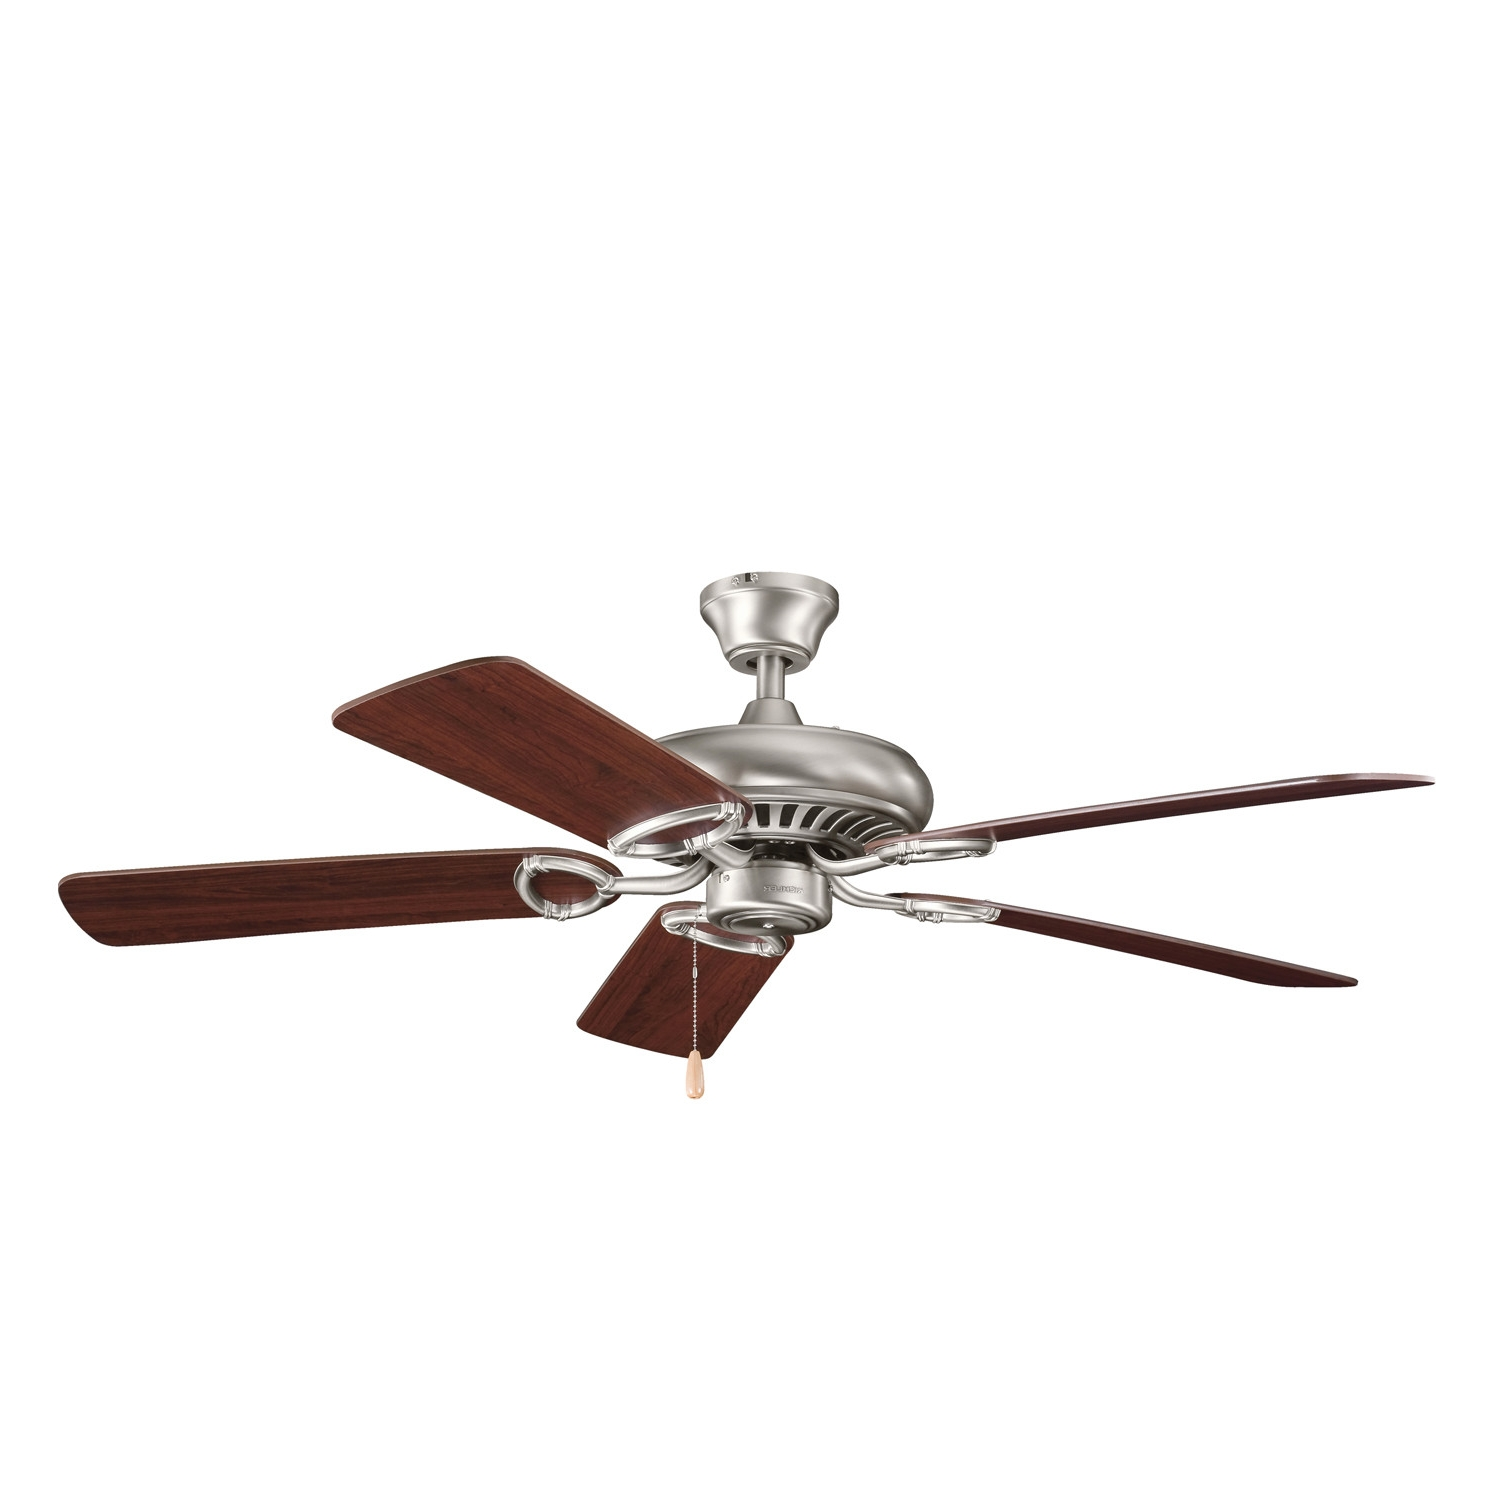 Newest Outdoor Ceiling Fans With Motion Sensor Light With Regard To Flush Mount Outdoor Lighting Motion Sensor (View 2 of 20)